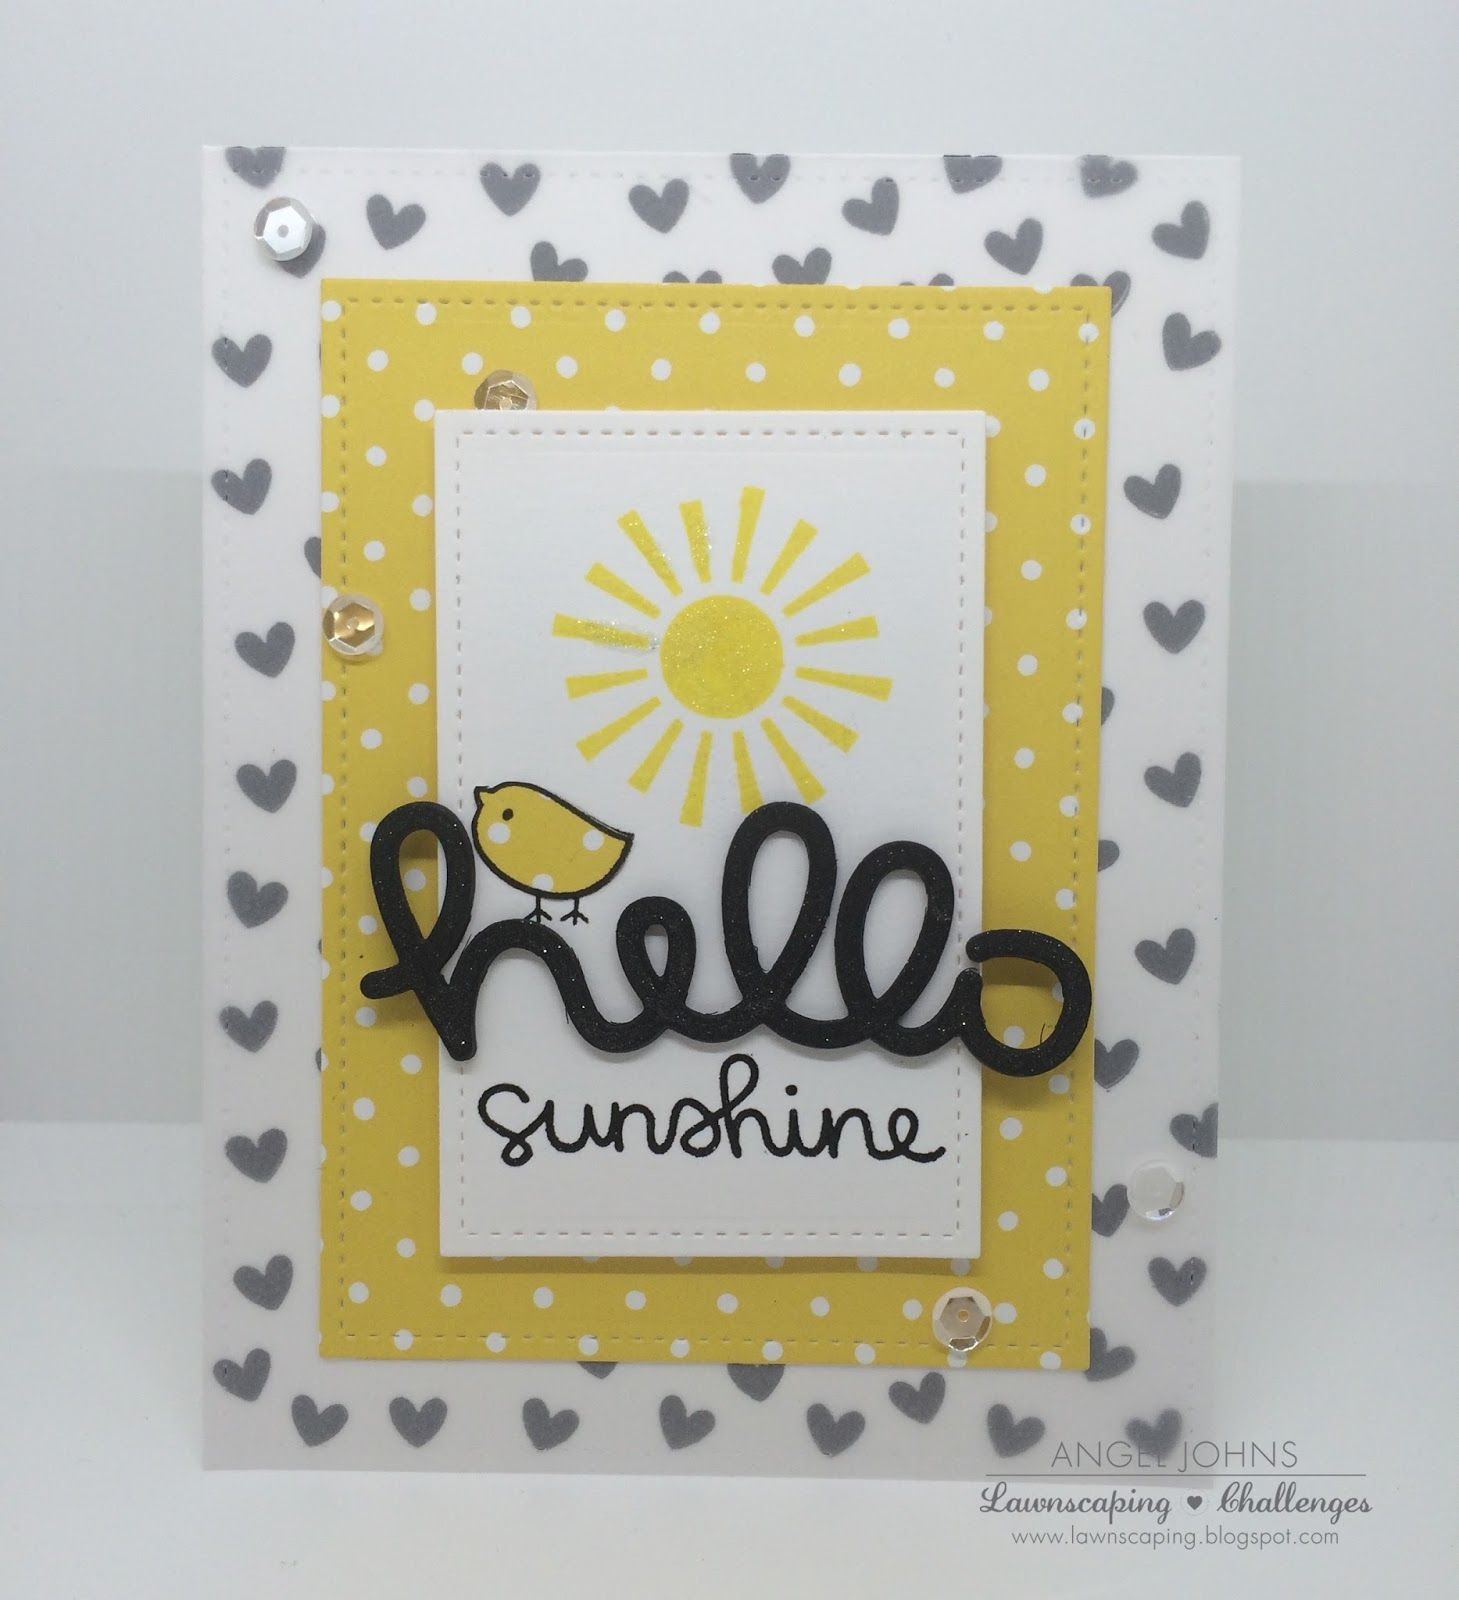 Lawnscaping Challenge: Hello Sunshine! by Angel